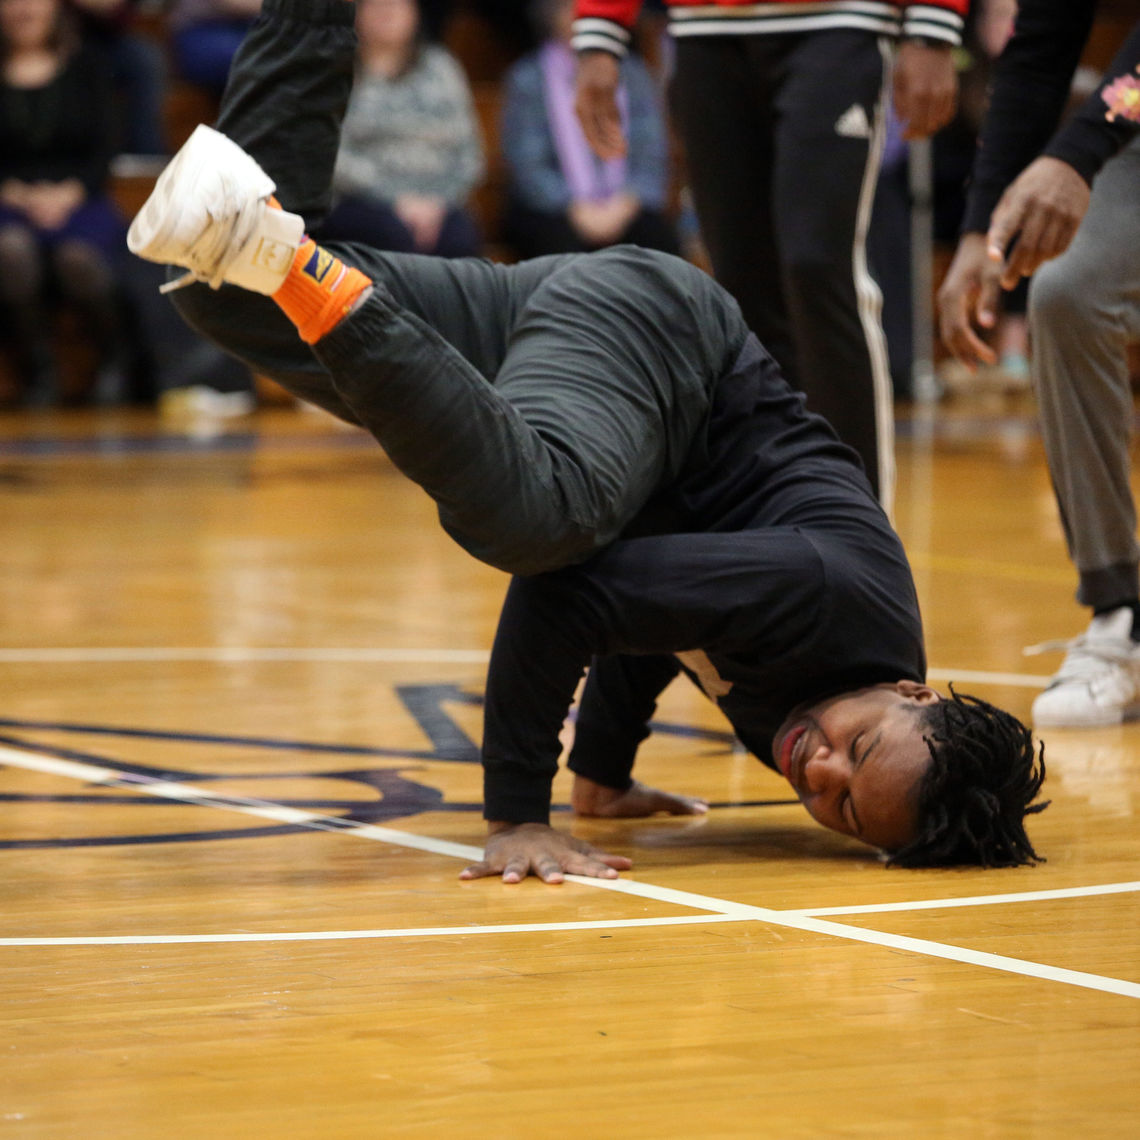 Breakdance, one of the roots of litefeet, reflects in this movement.